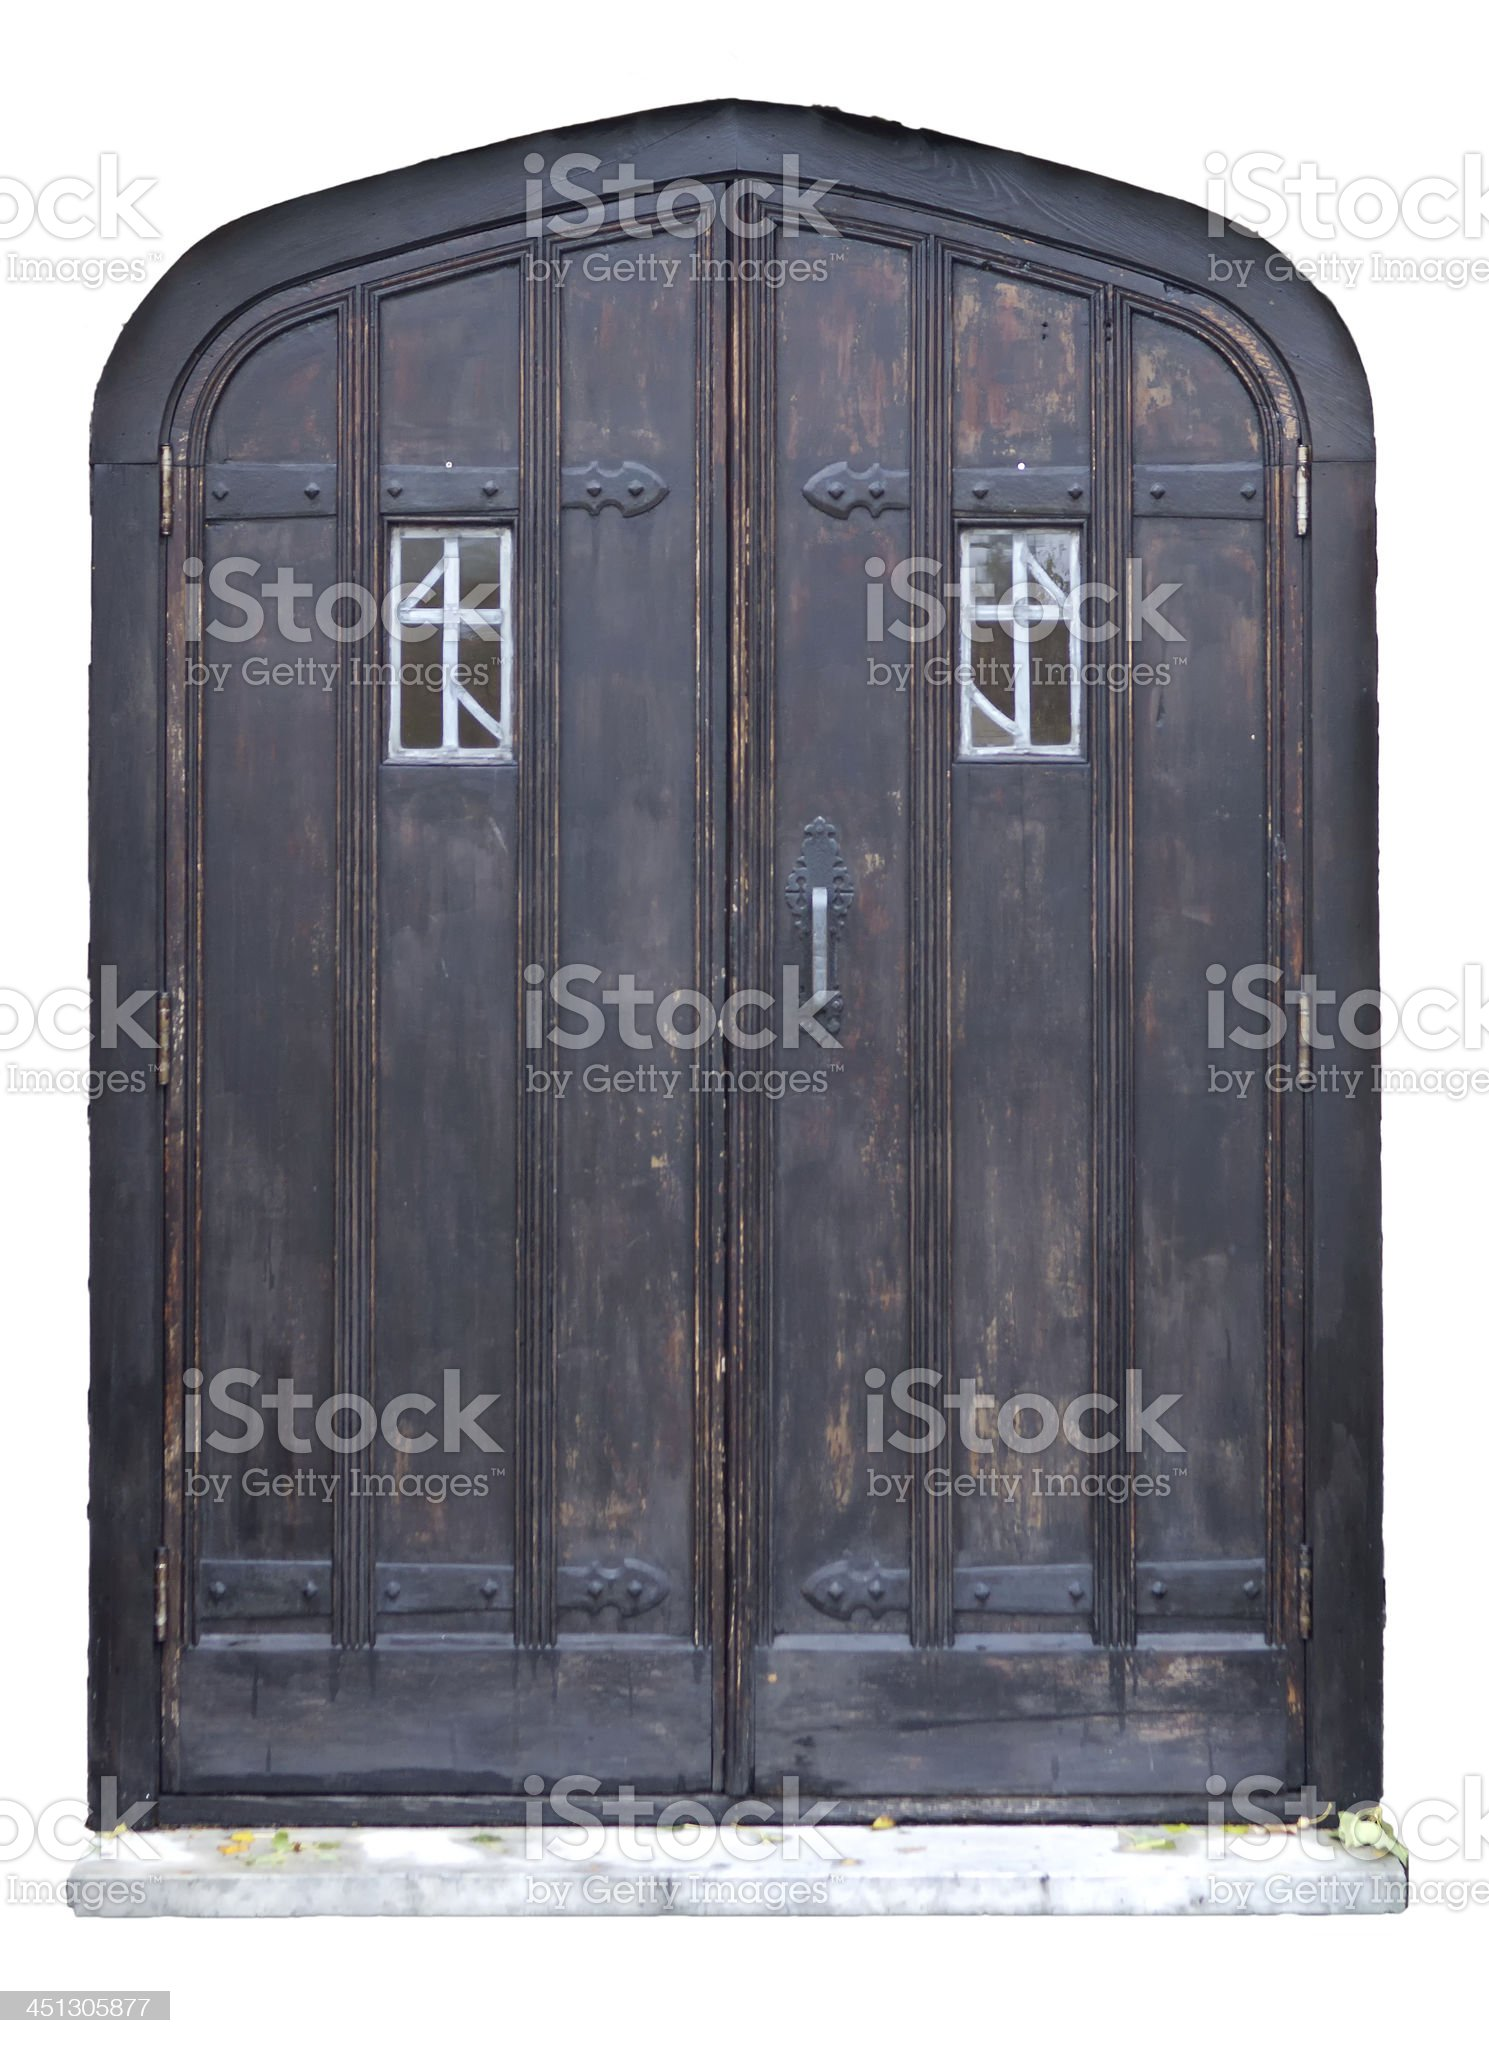 Old Entrance Doors royalty-free stock photo